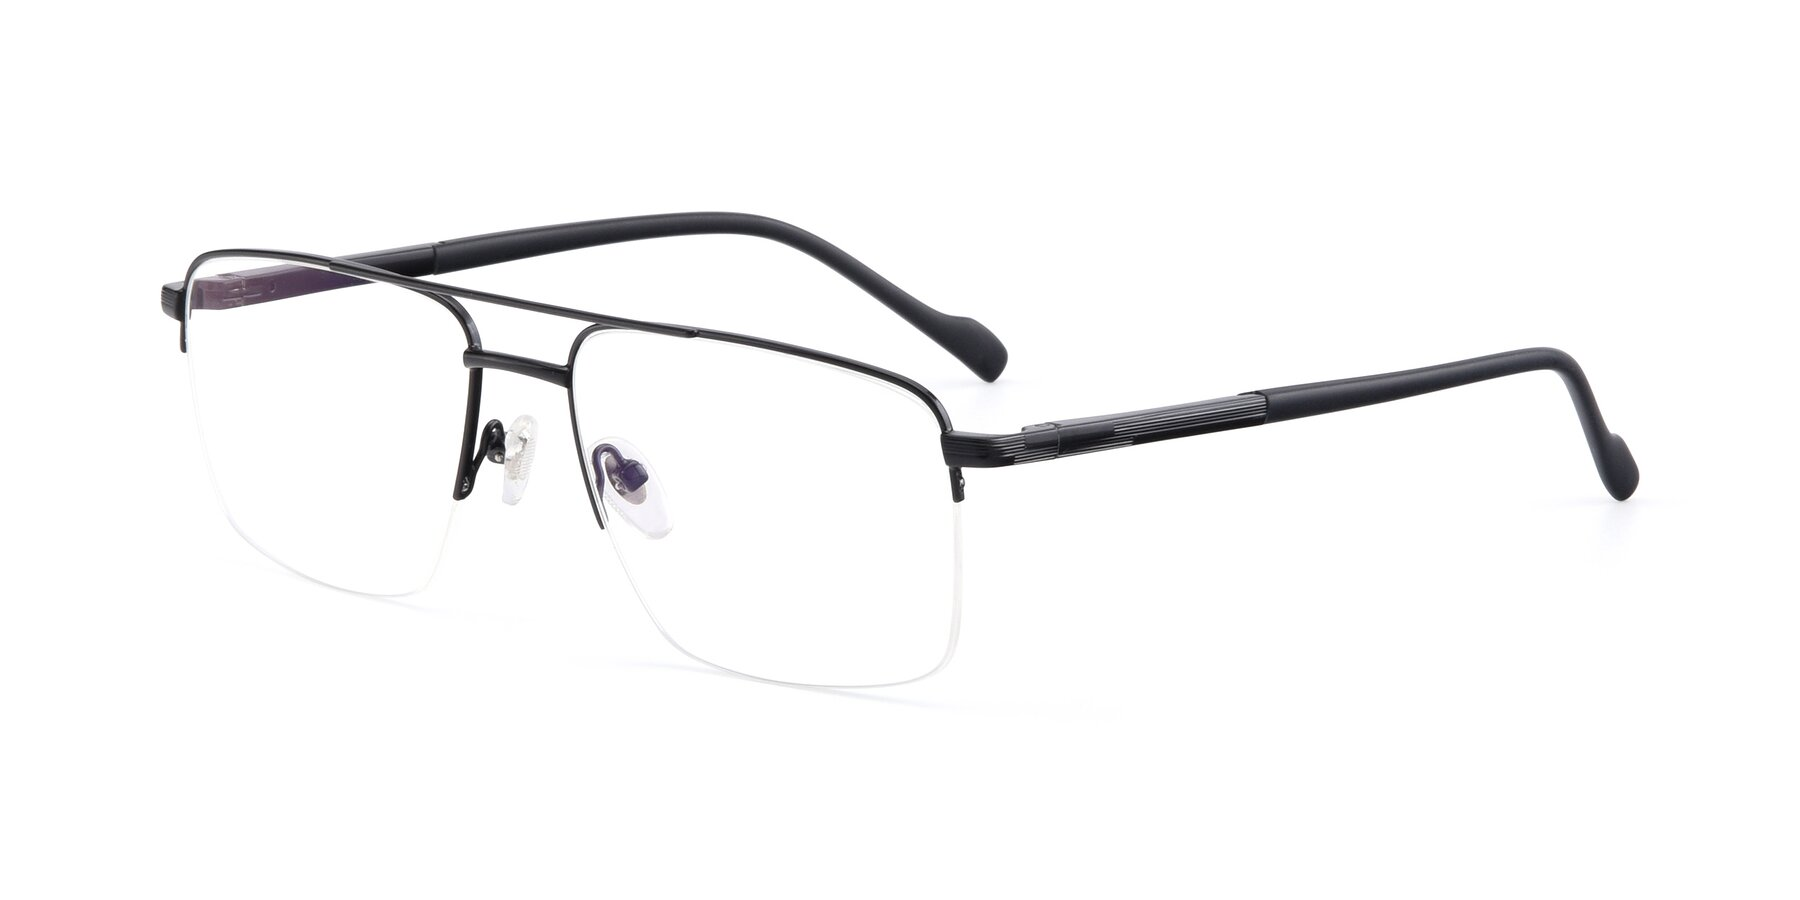 Angle of 19013 in Black with Clear Eyeglass Lenses